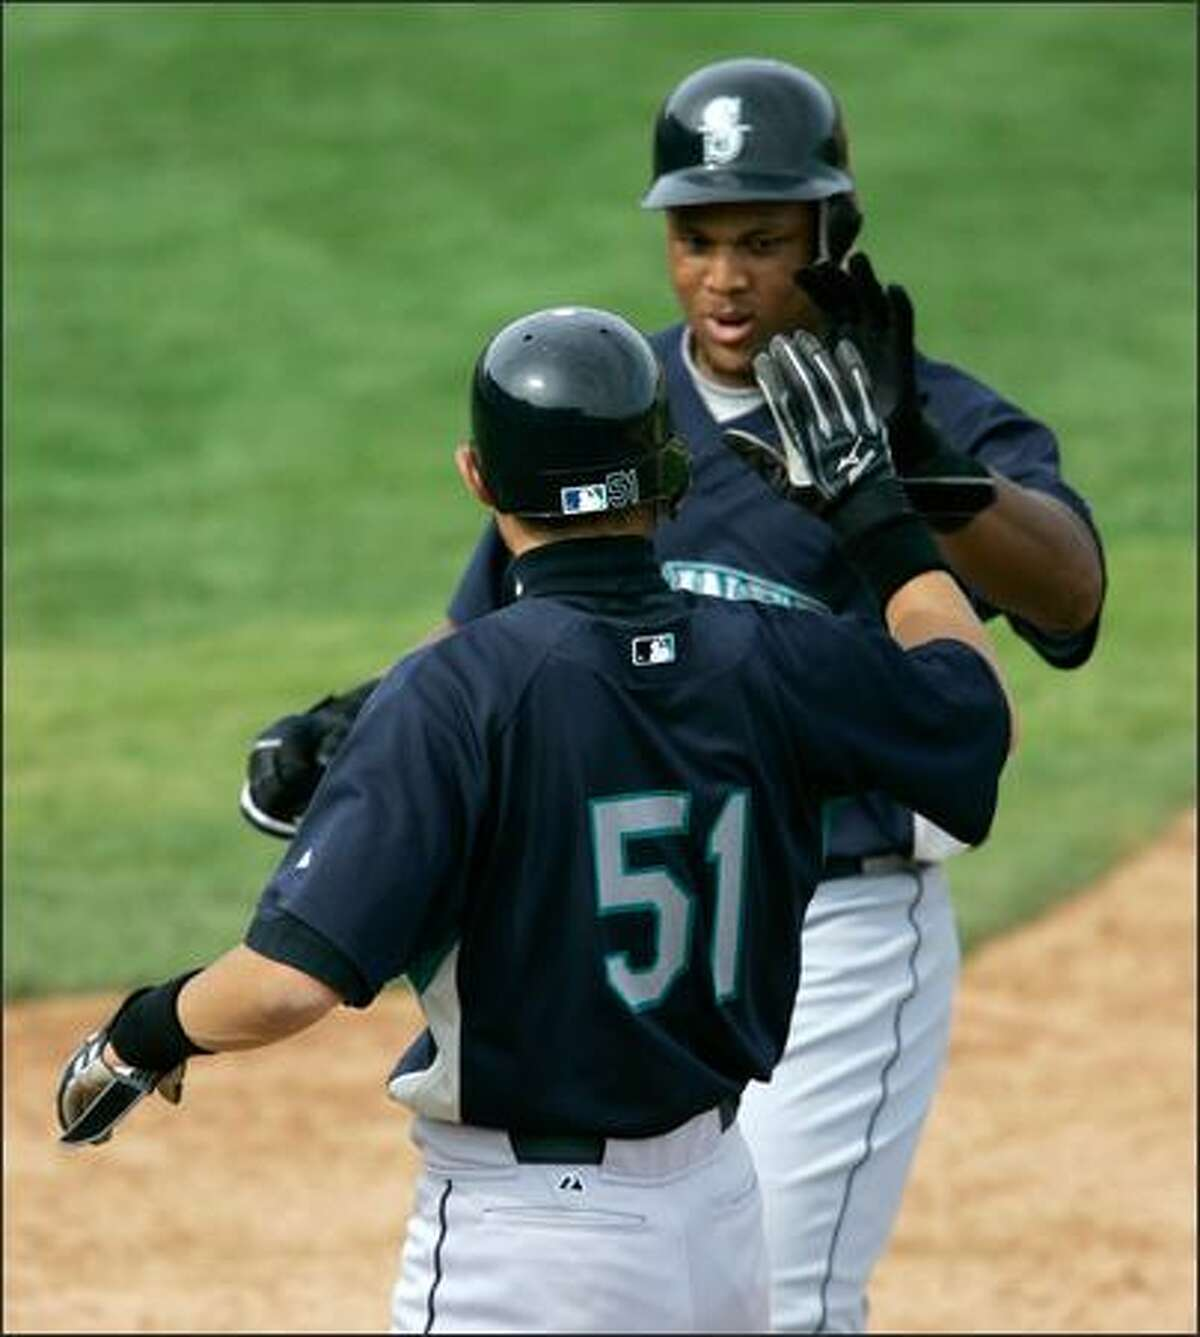 Adrian Beltre, right, seen here being greeted by teammate Ichiro Suzuki after hitting a homer Sunday, thrives on competition.